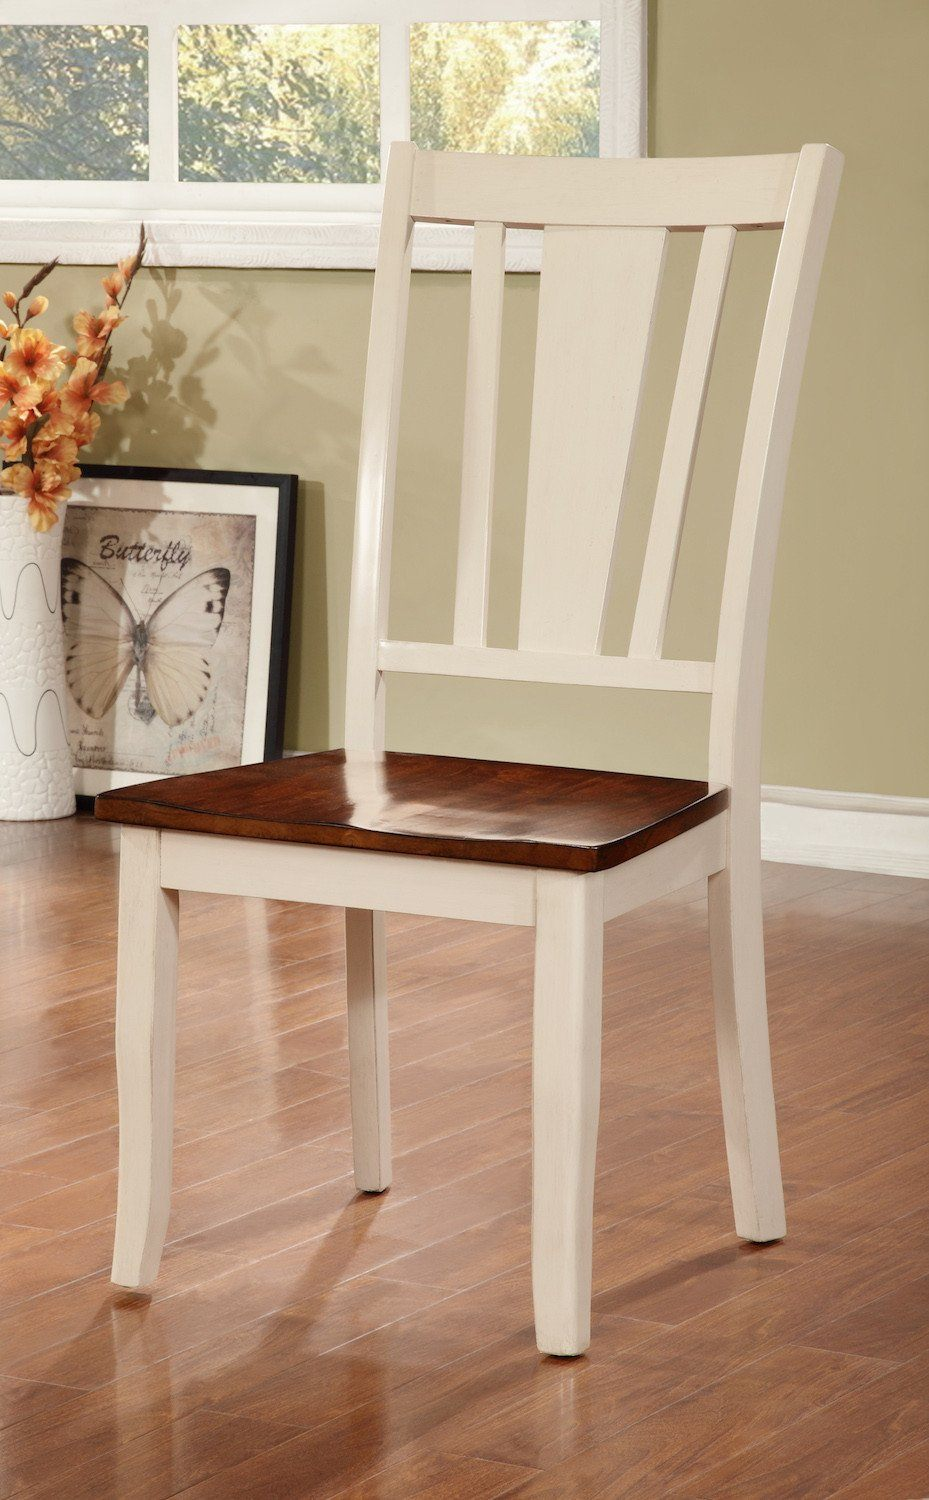 Lope Two-Tone Dining Chair Vintage White & Cherry